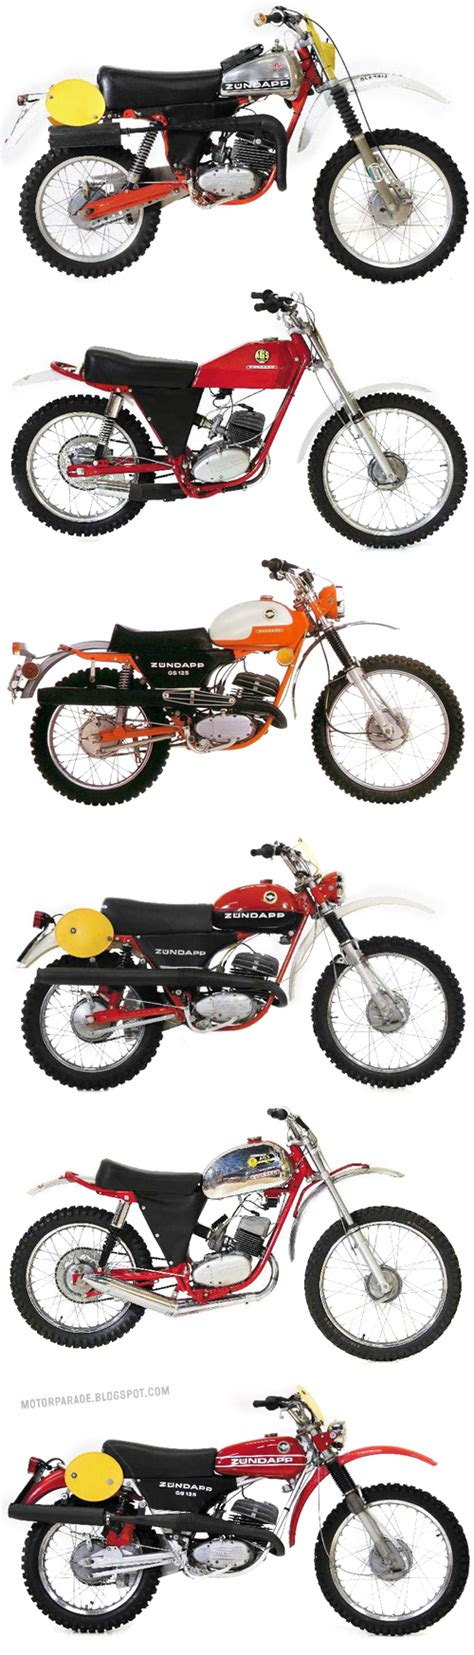 types of motocross bikes motorbike http textview org understanding the different